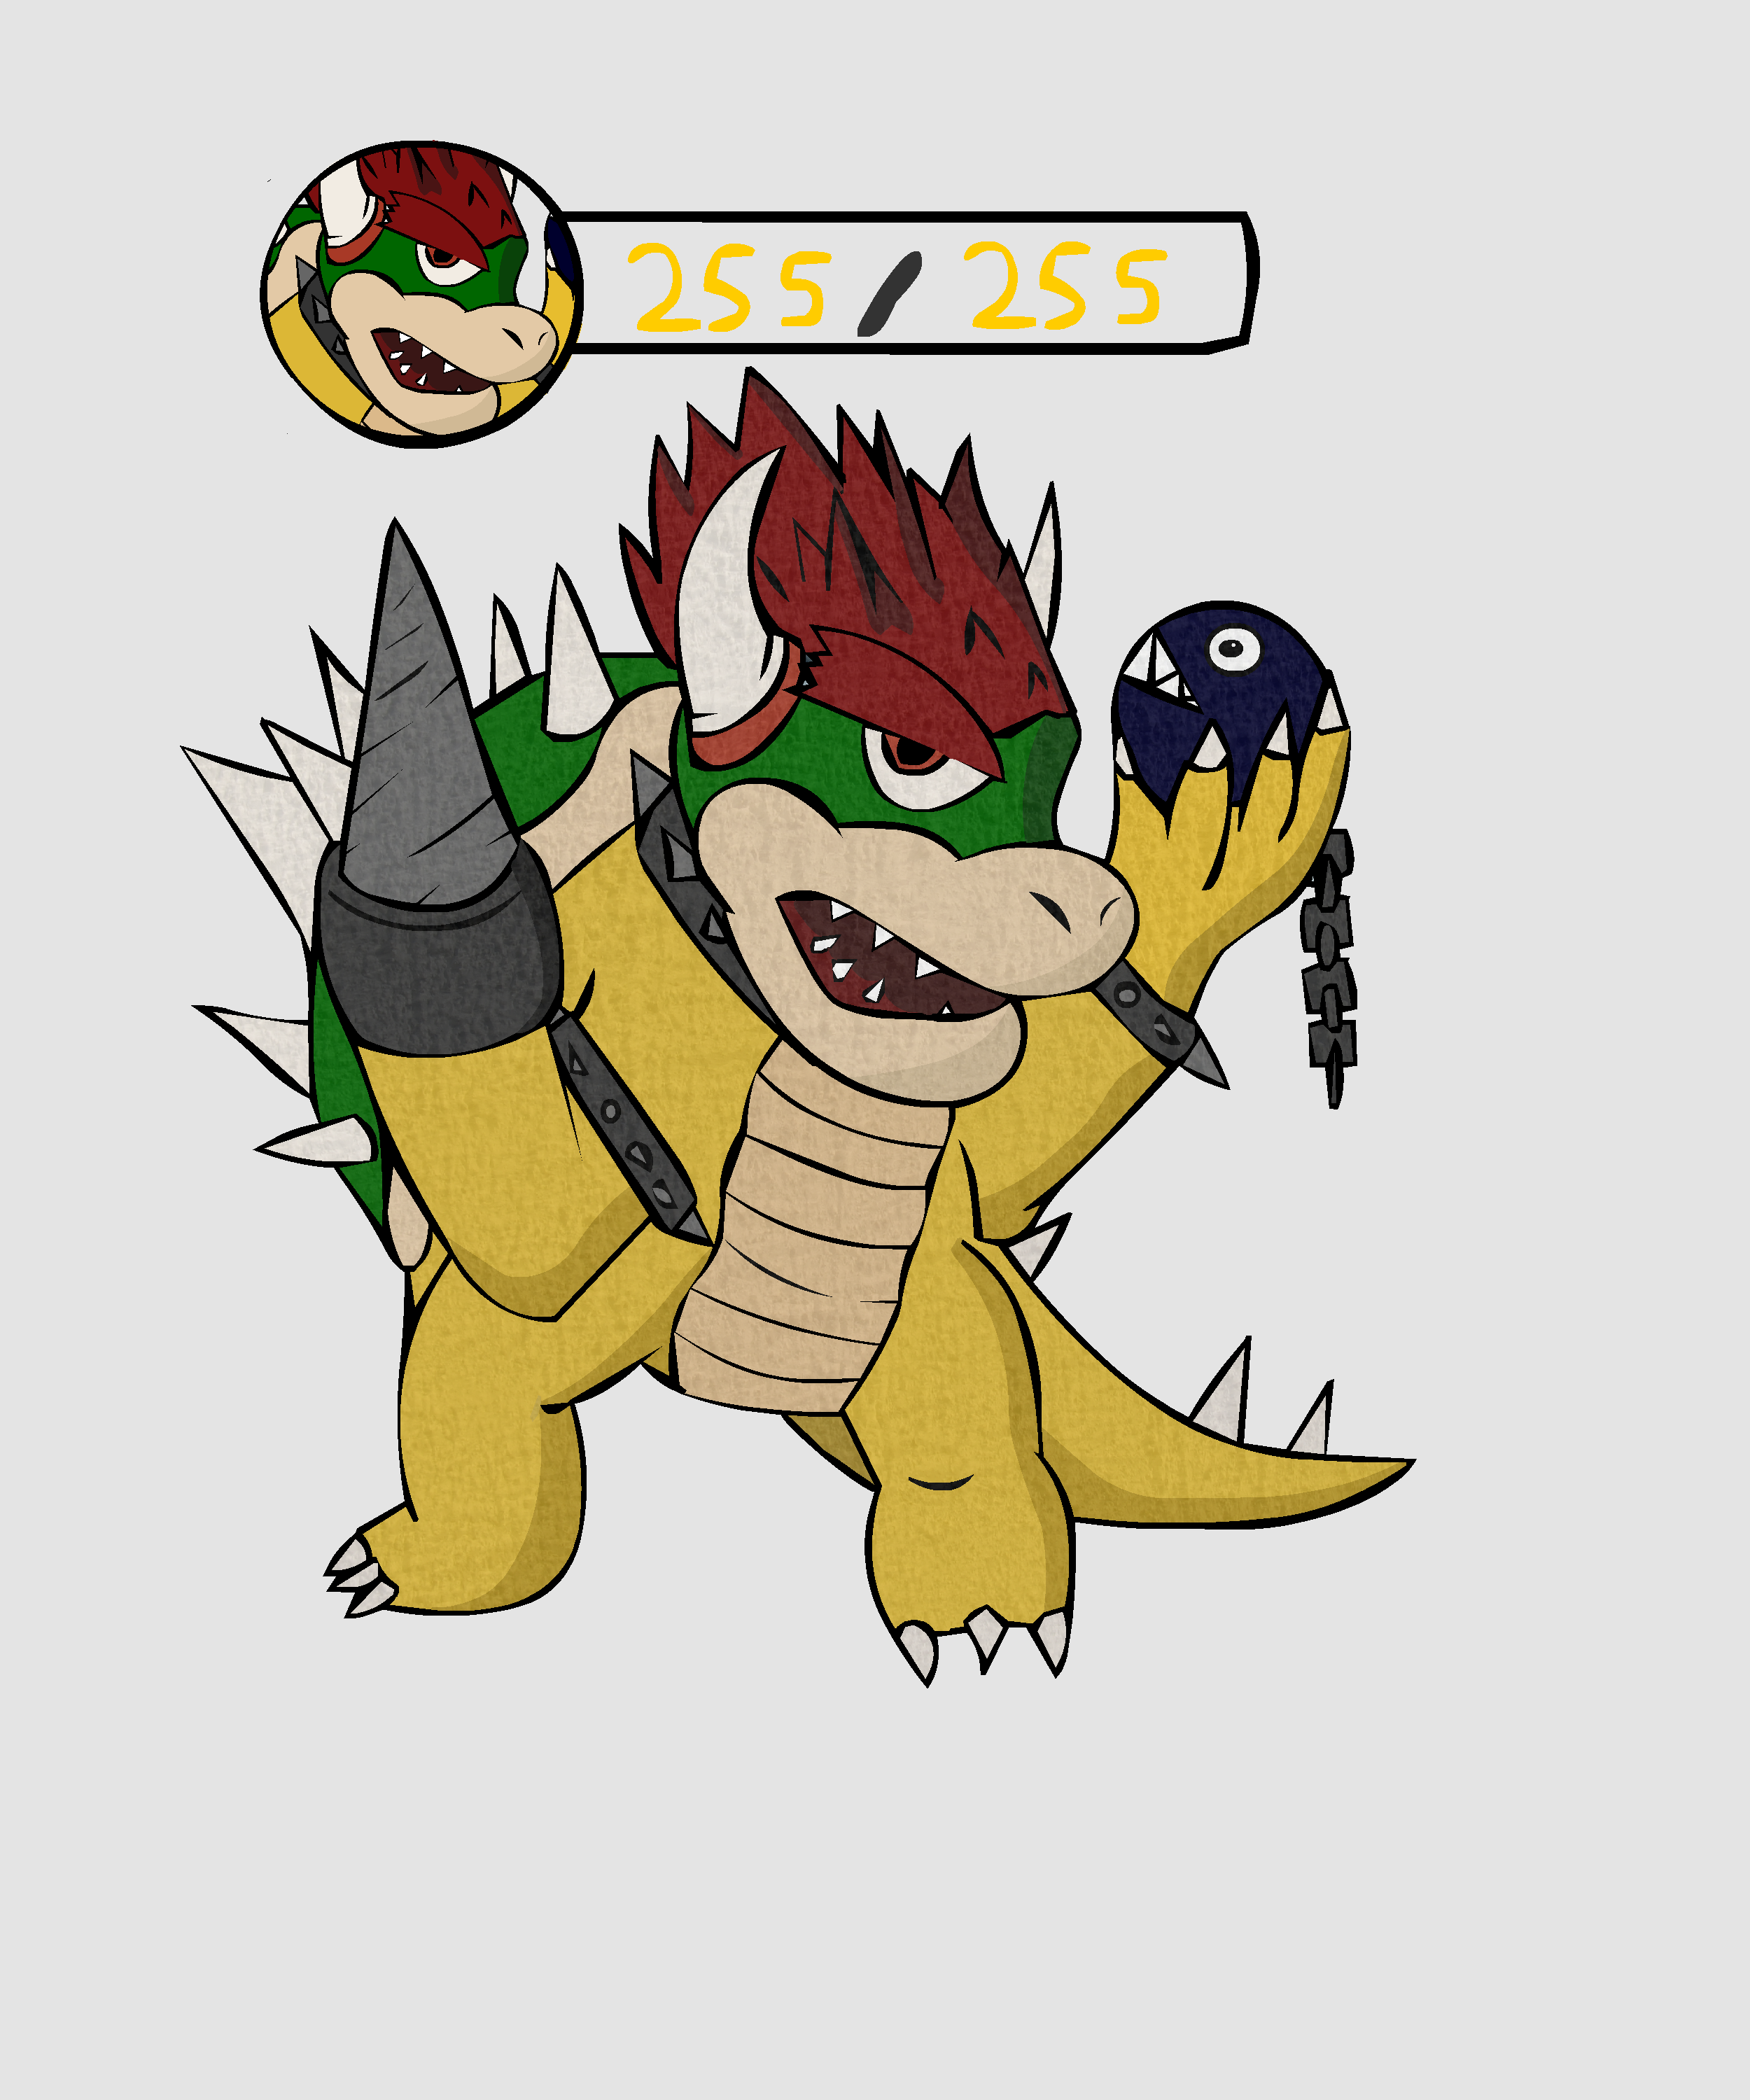 Bowser from Super Mario RPG